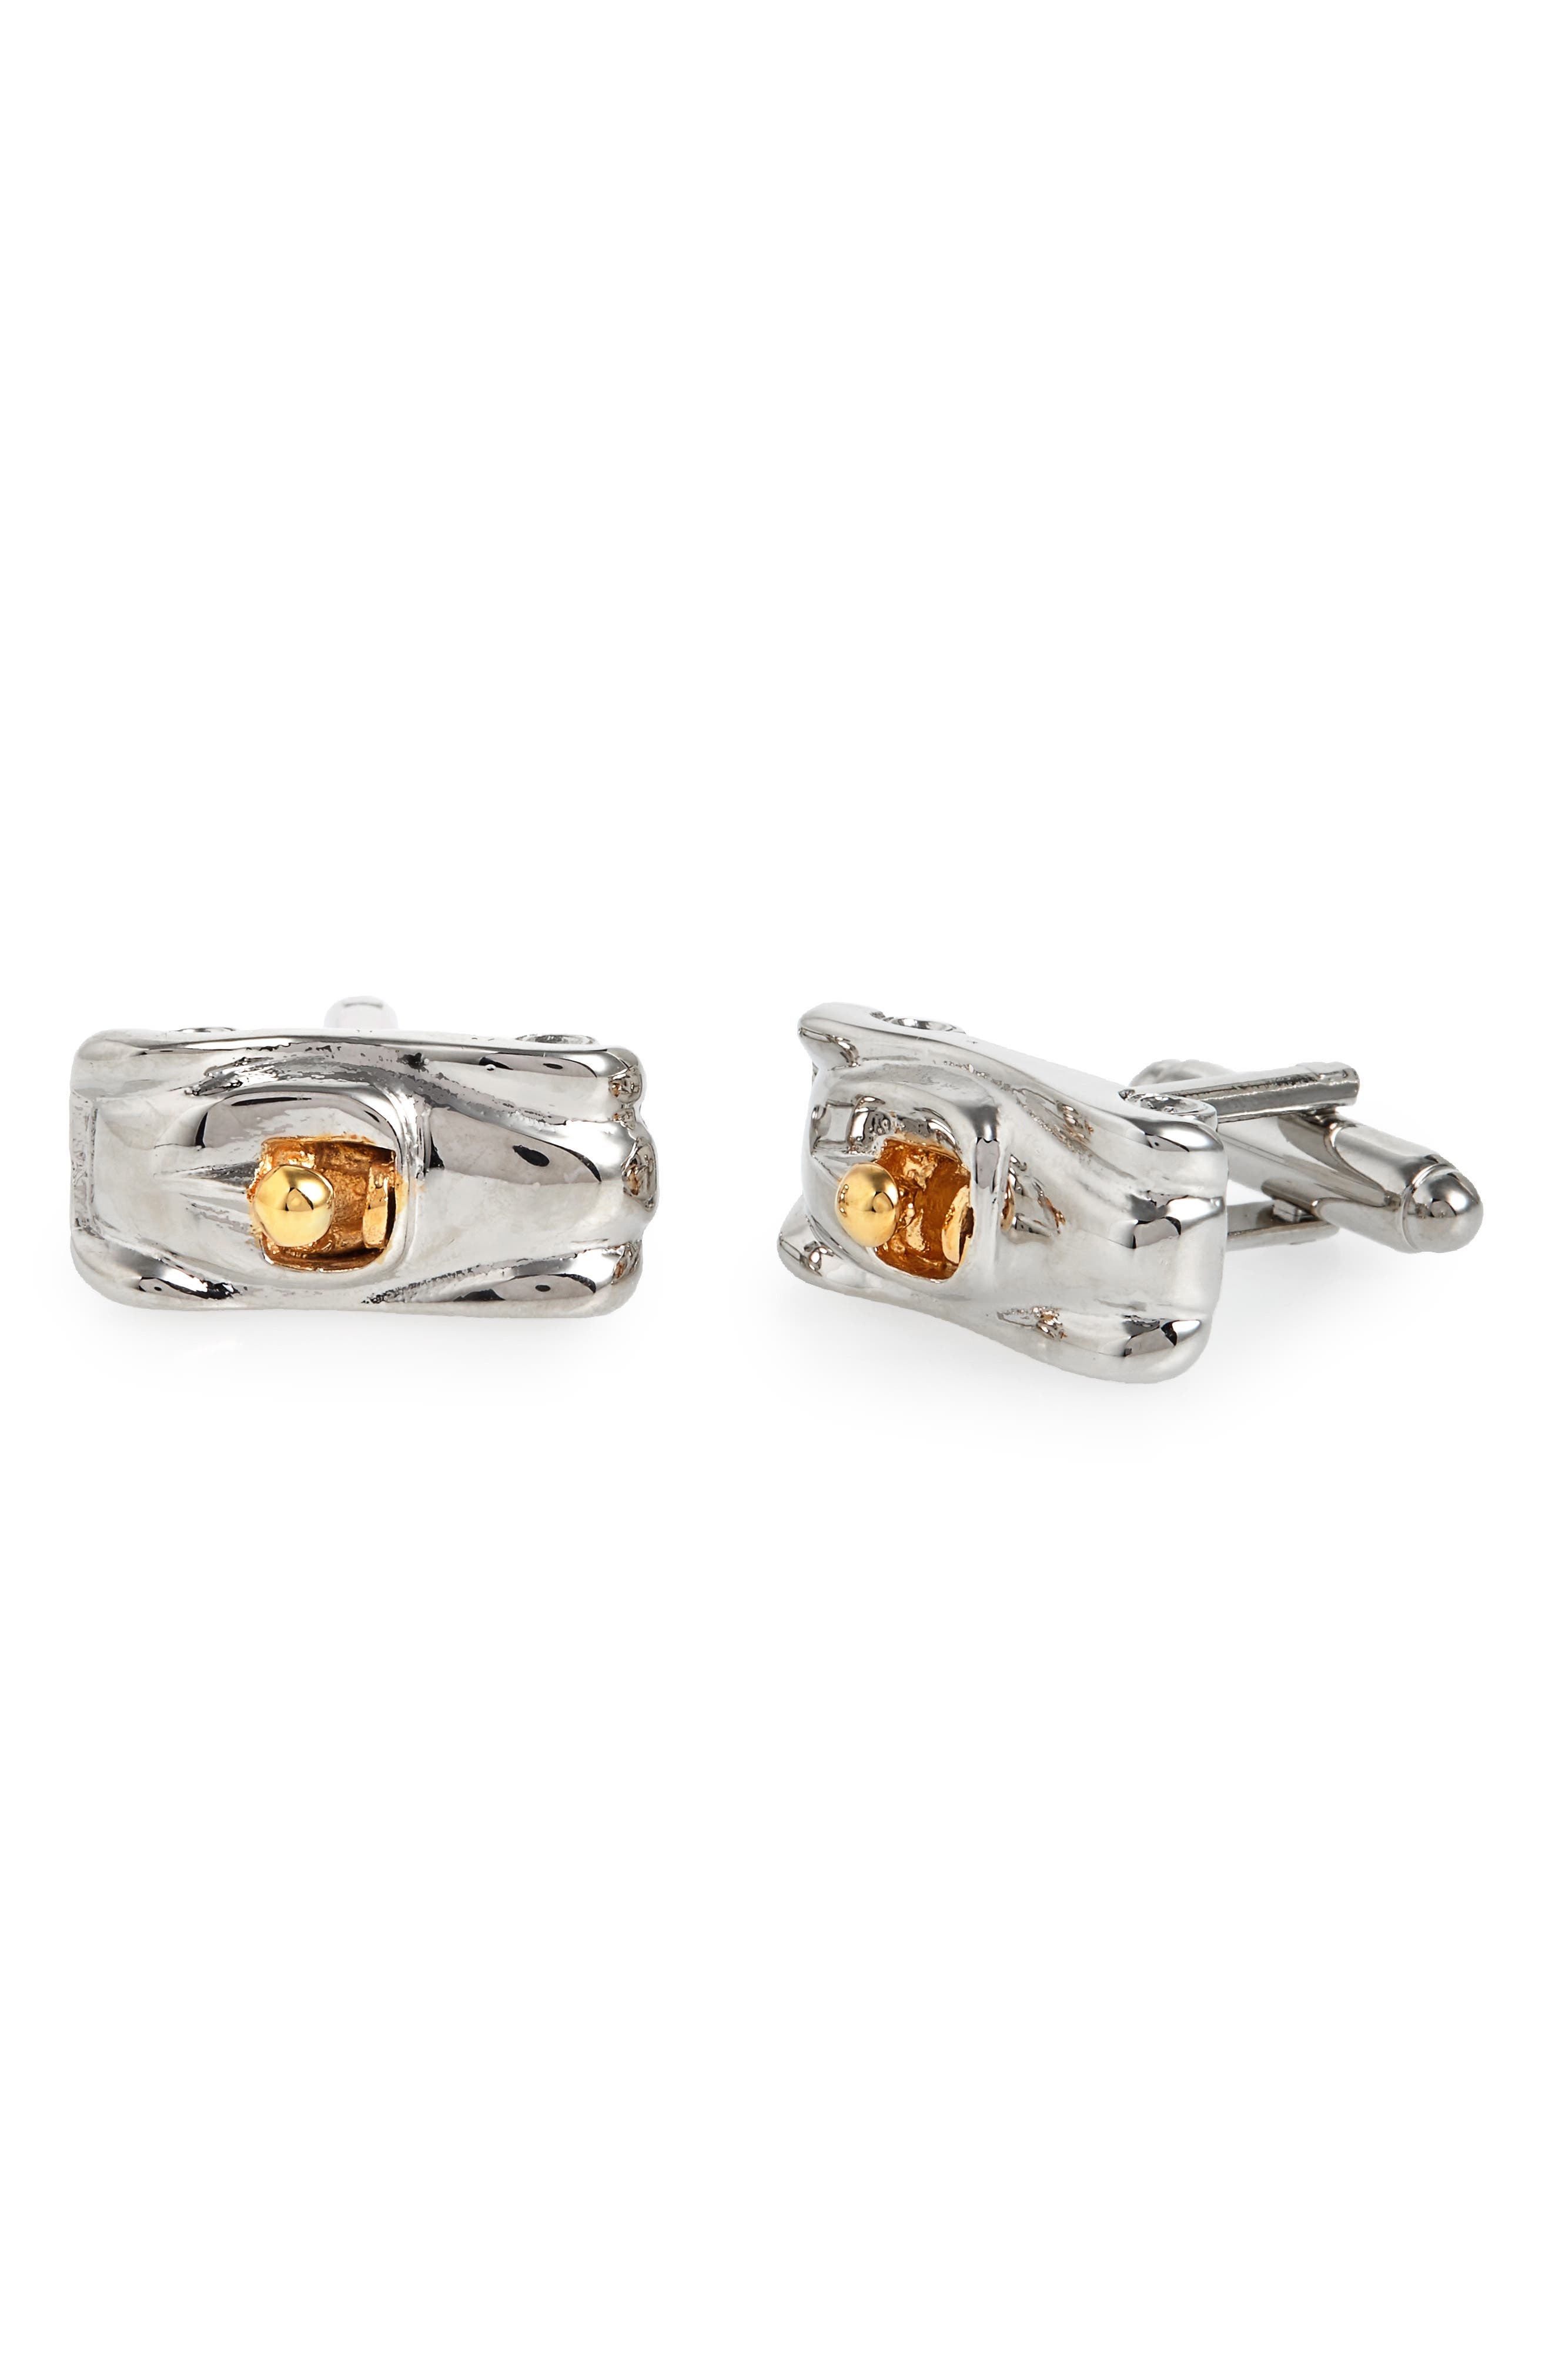 Main Image - LINK UP Speed Racer Cuff Links